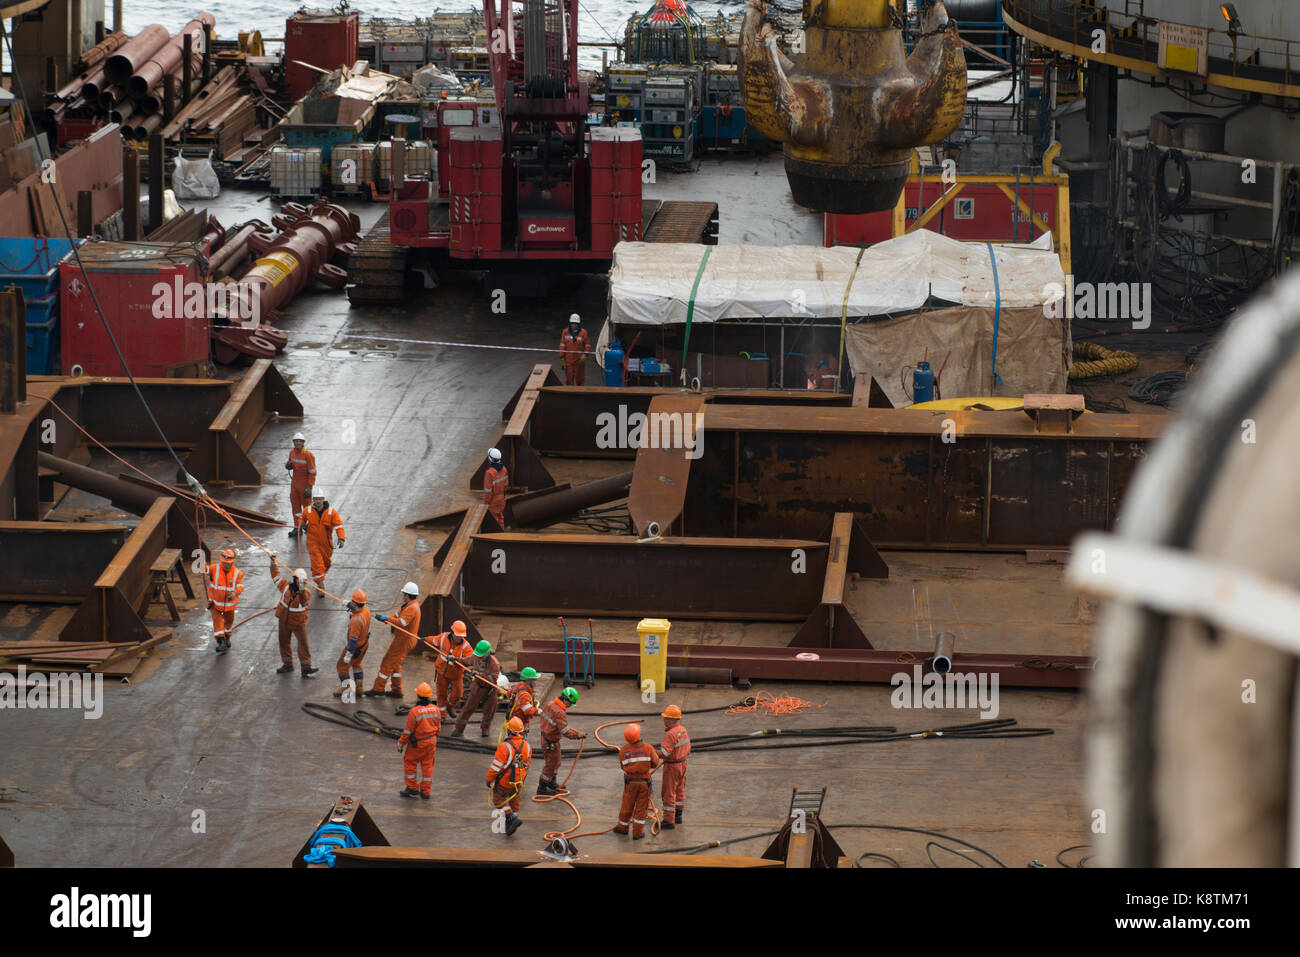 Workers on the deck of the Saipem S7000 heavy lifting vessel, pulling a rope. credit: LEE RAMSDEN / ALAMY - Stock Image